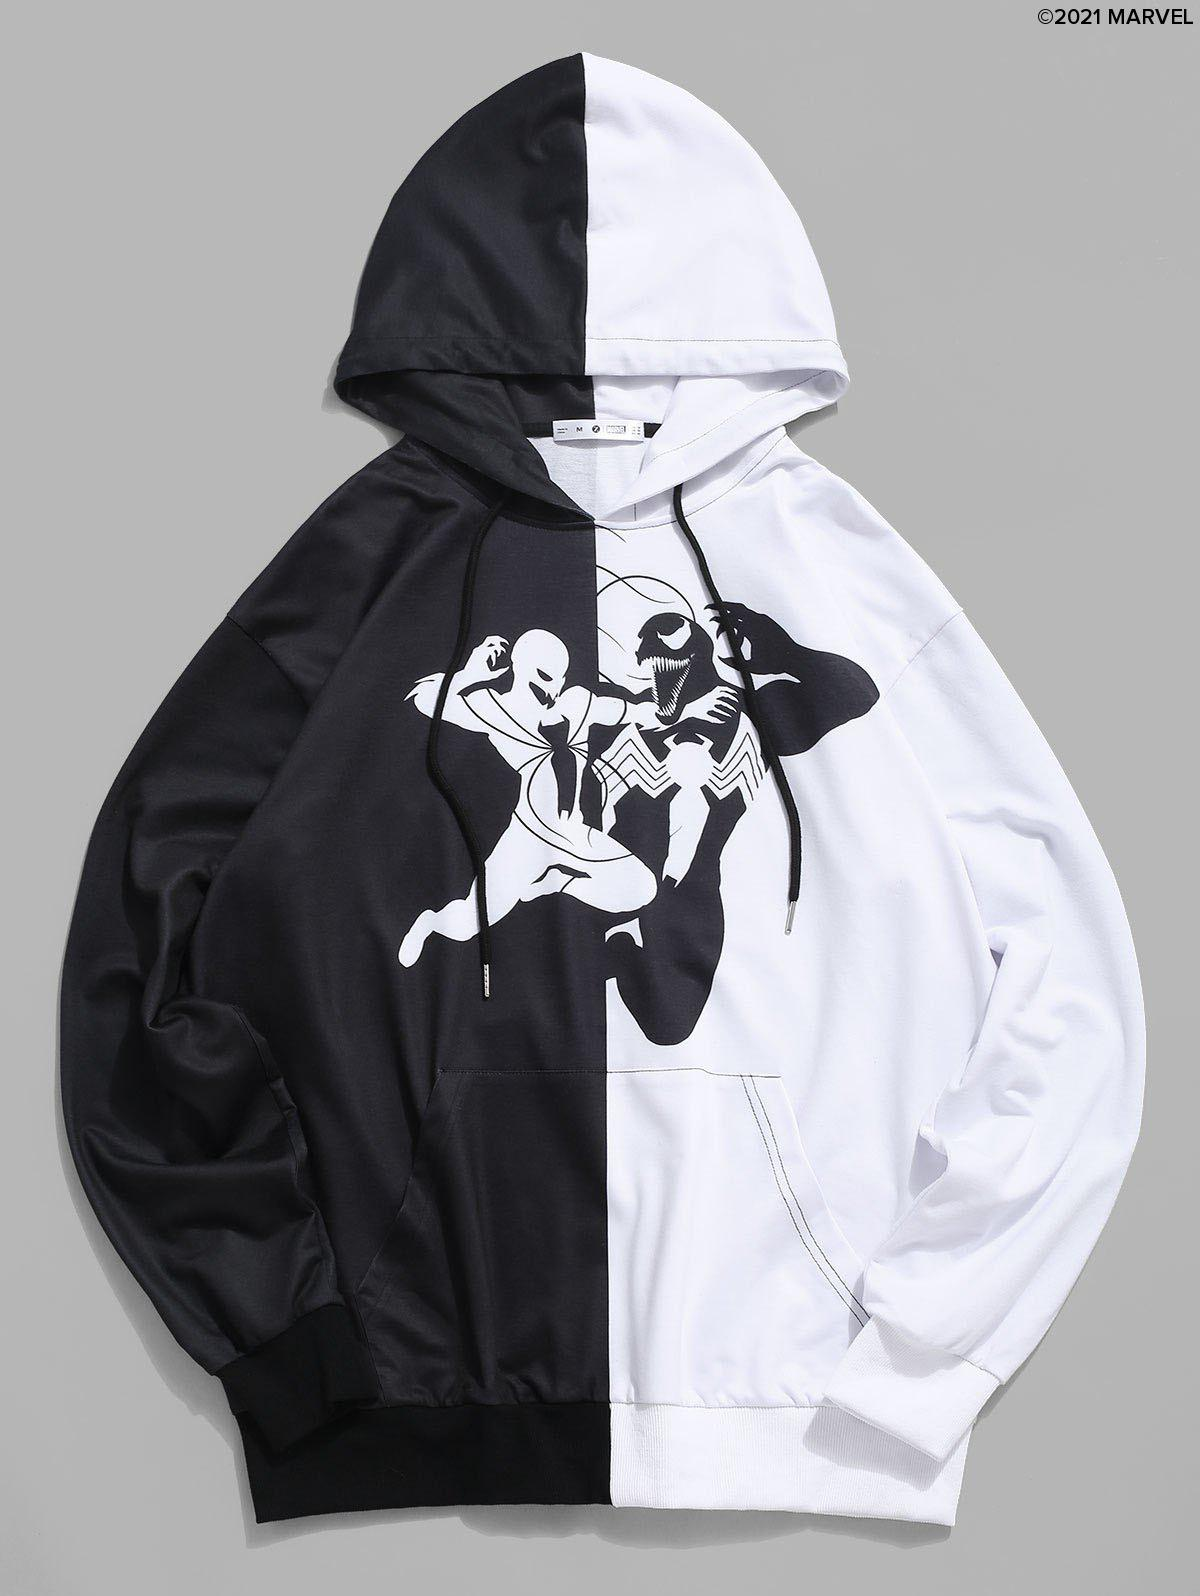 New Marvel Spider-Man Venom Two Tone Hoodie